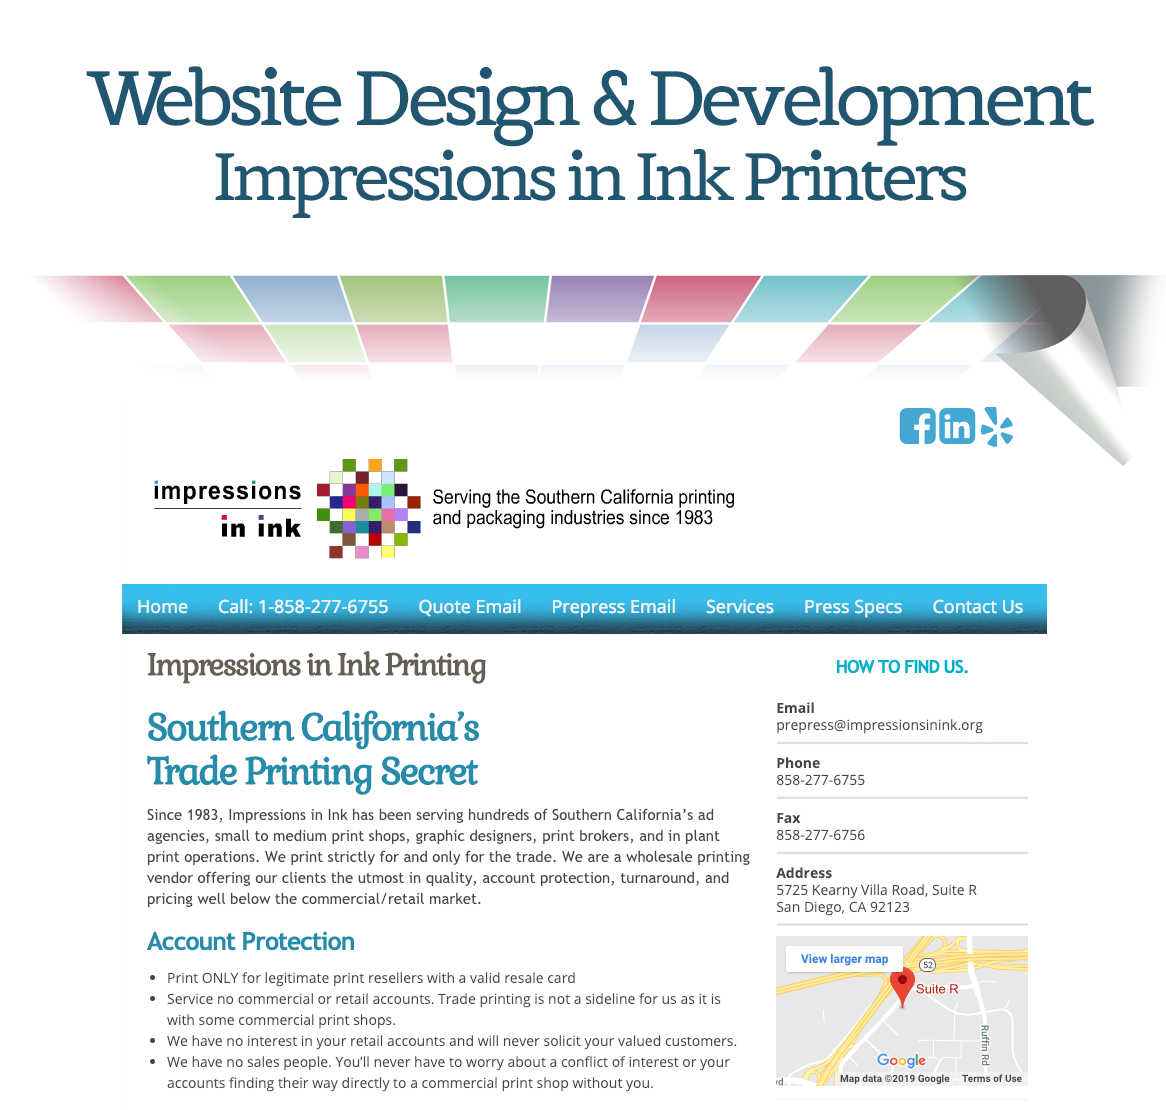 Website Design & Development: Impressions in Ink